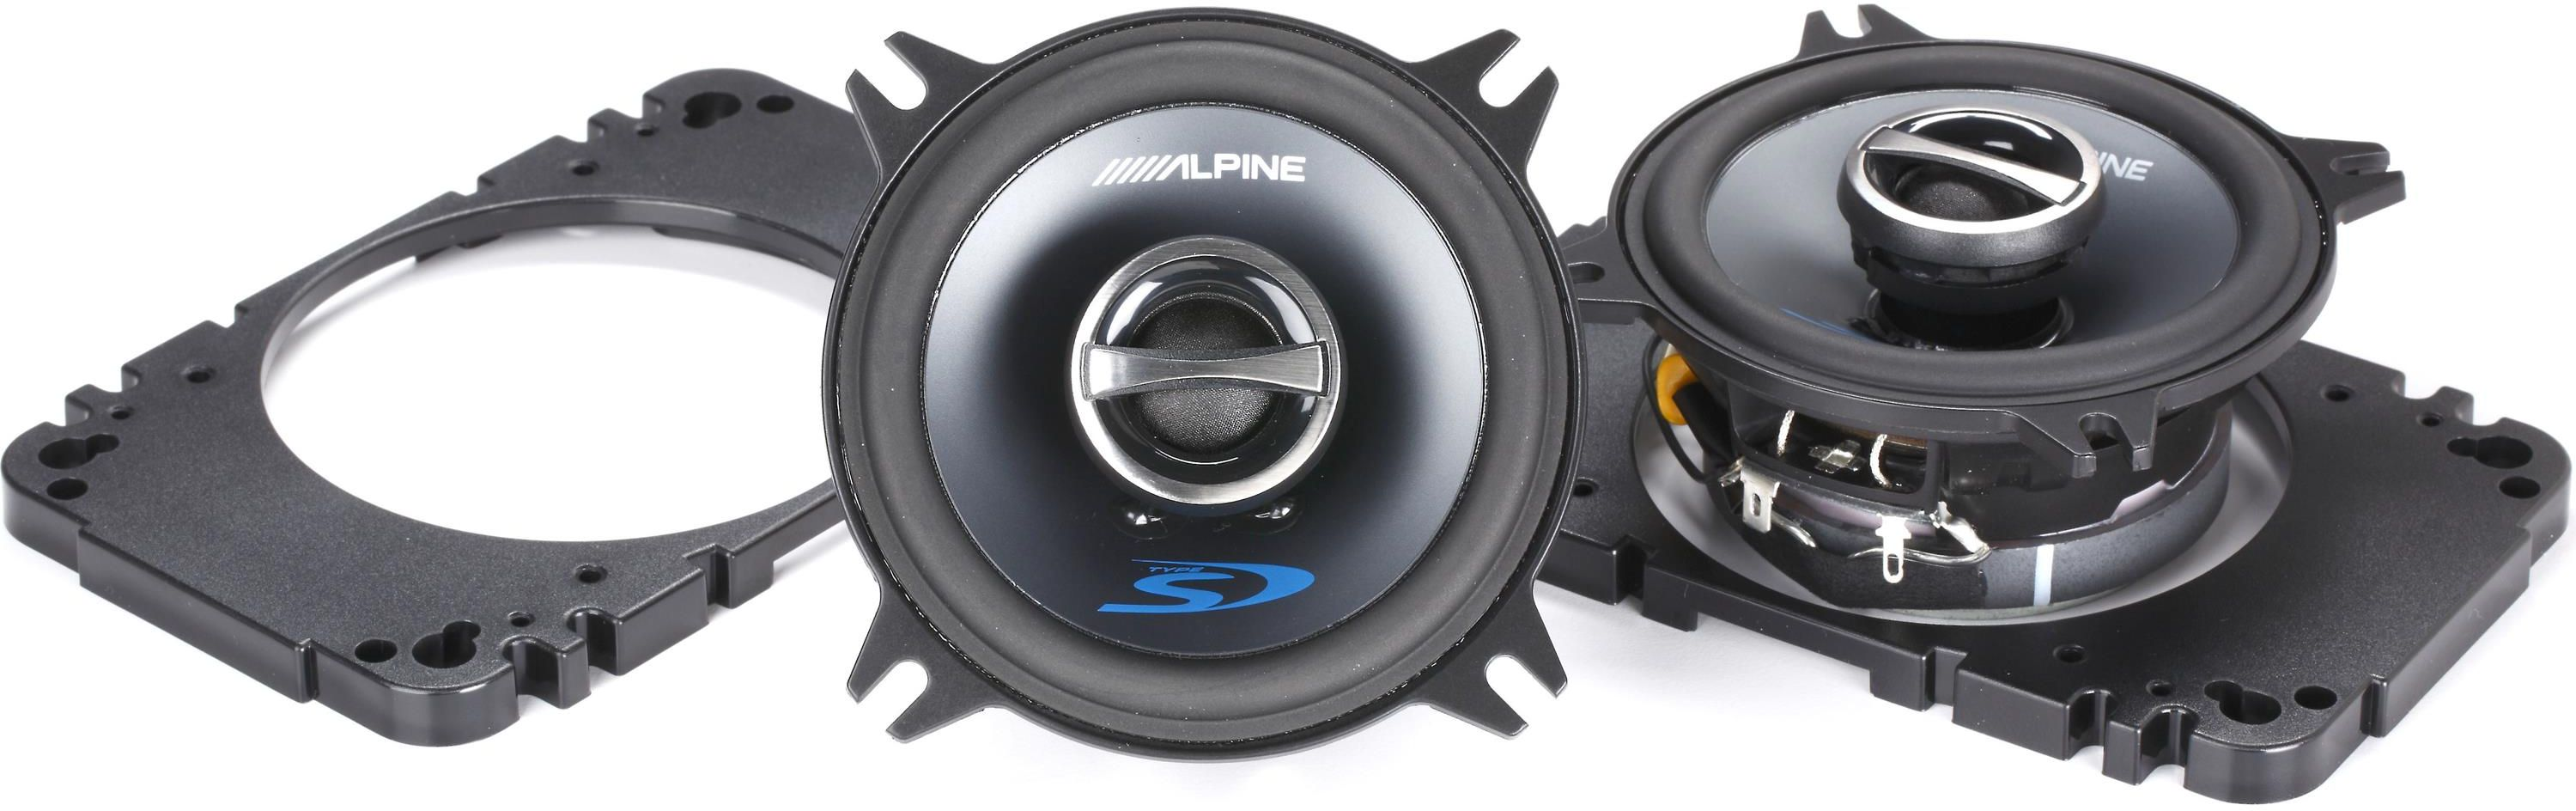 Car Speakers Subs Residential Commercial Automotive Speaker Installation Alpine 4 Coaxial 2 Way Set Sps 410